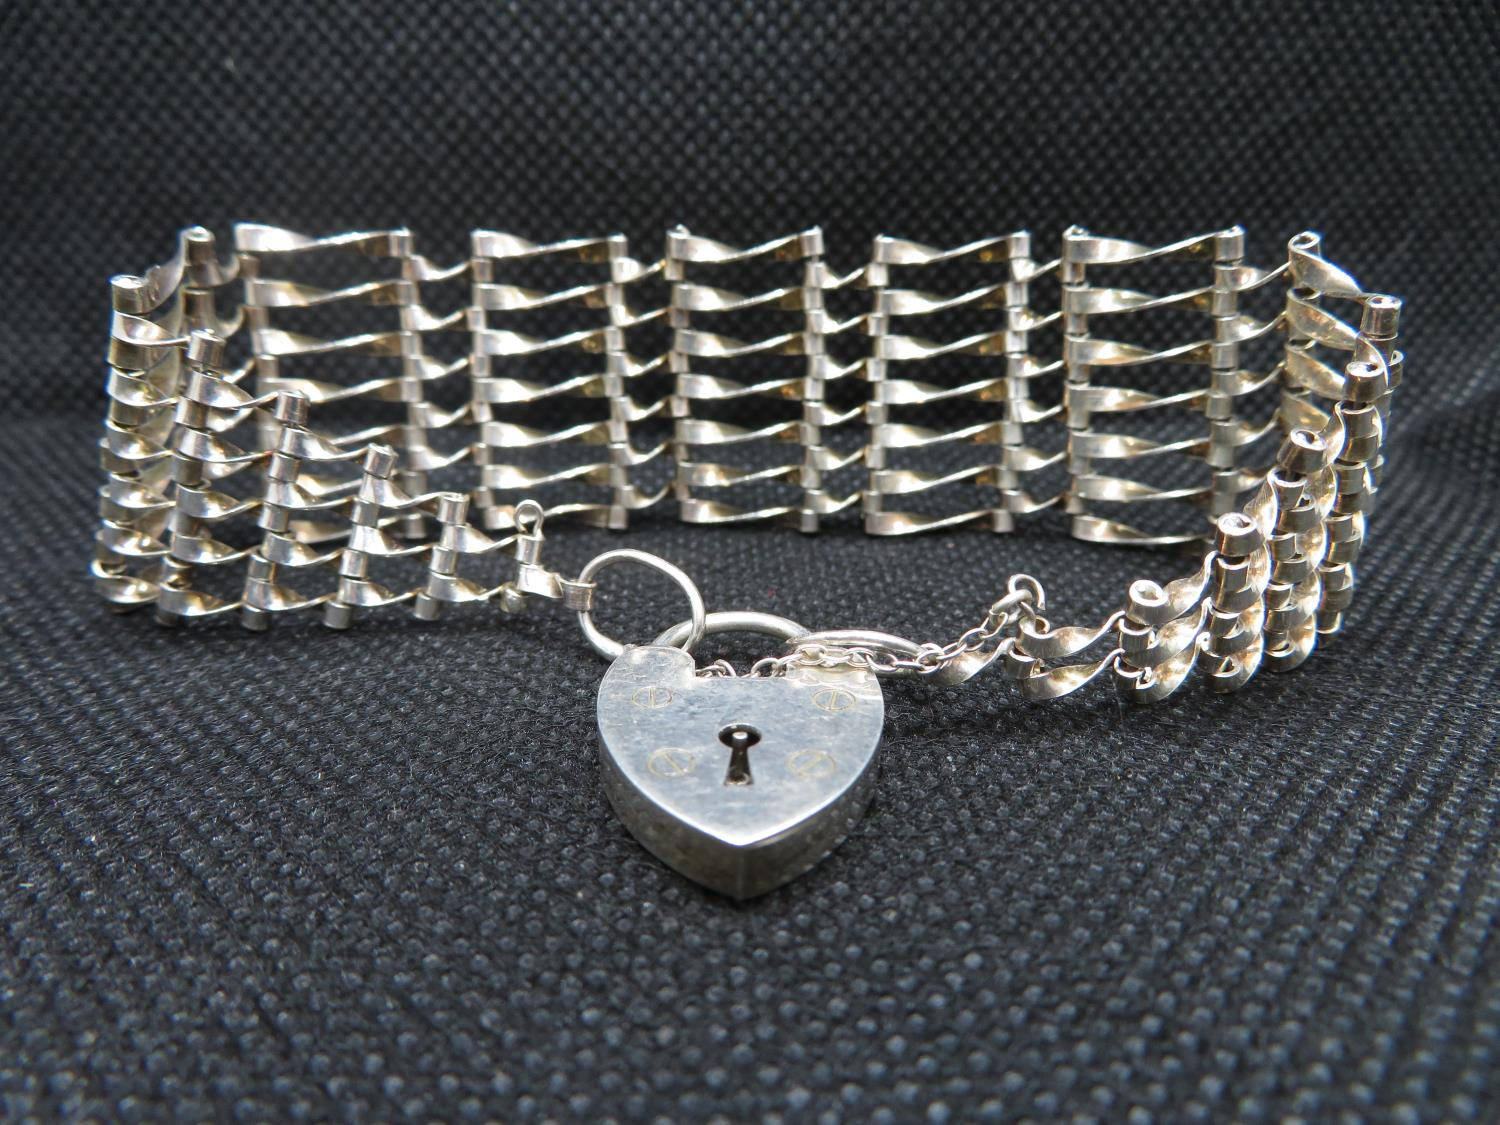 Lot 45 - Silver 7 bar gate bracelet with padlock and chain HM London 1975 19g